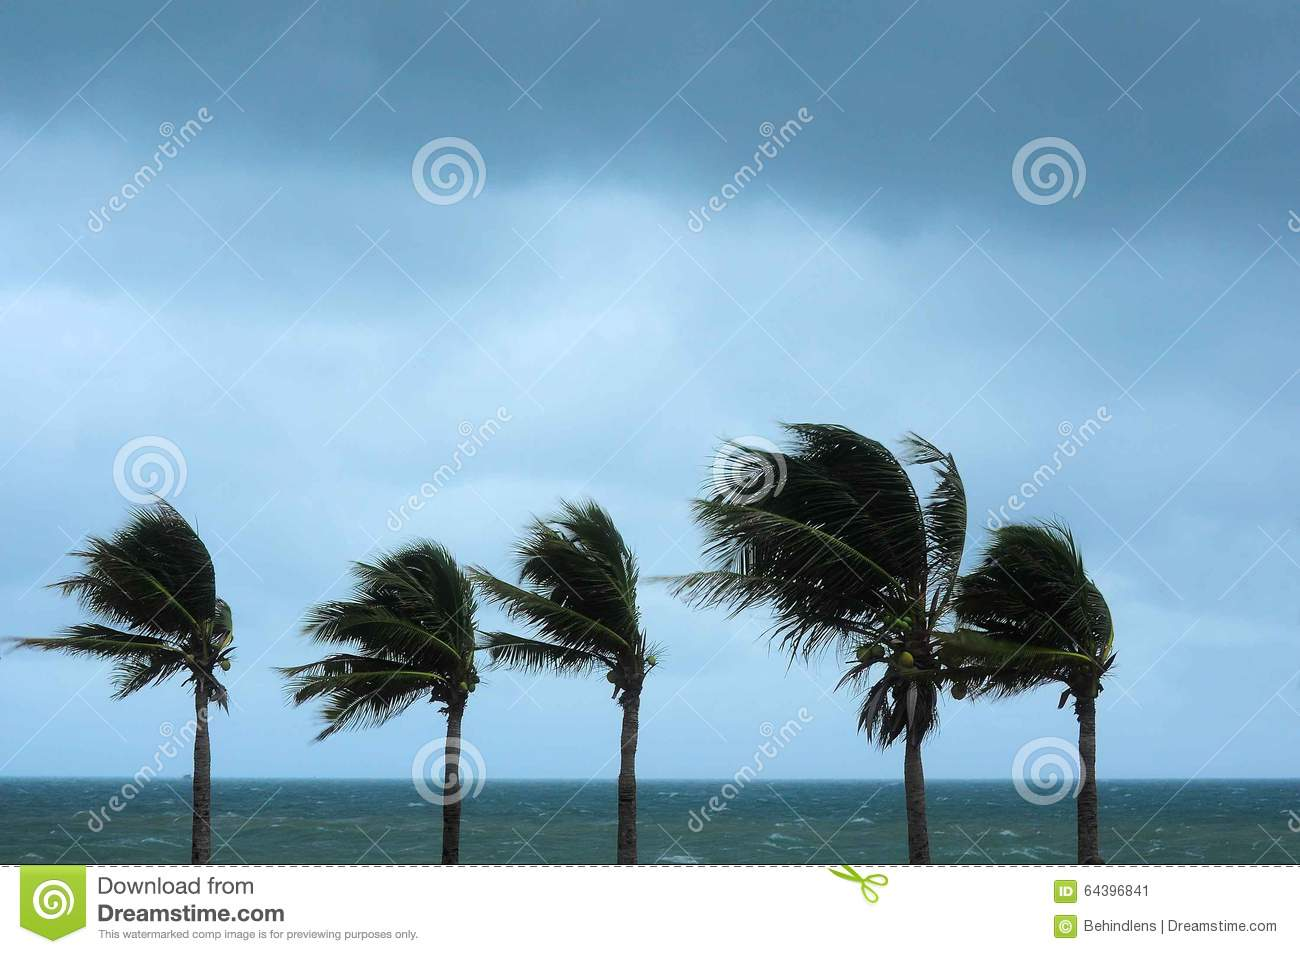 what did the hurricane say to the palm tree